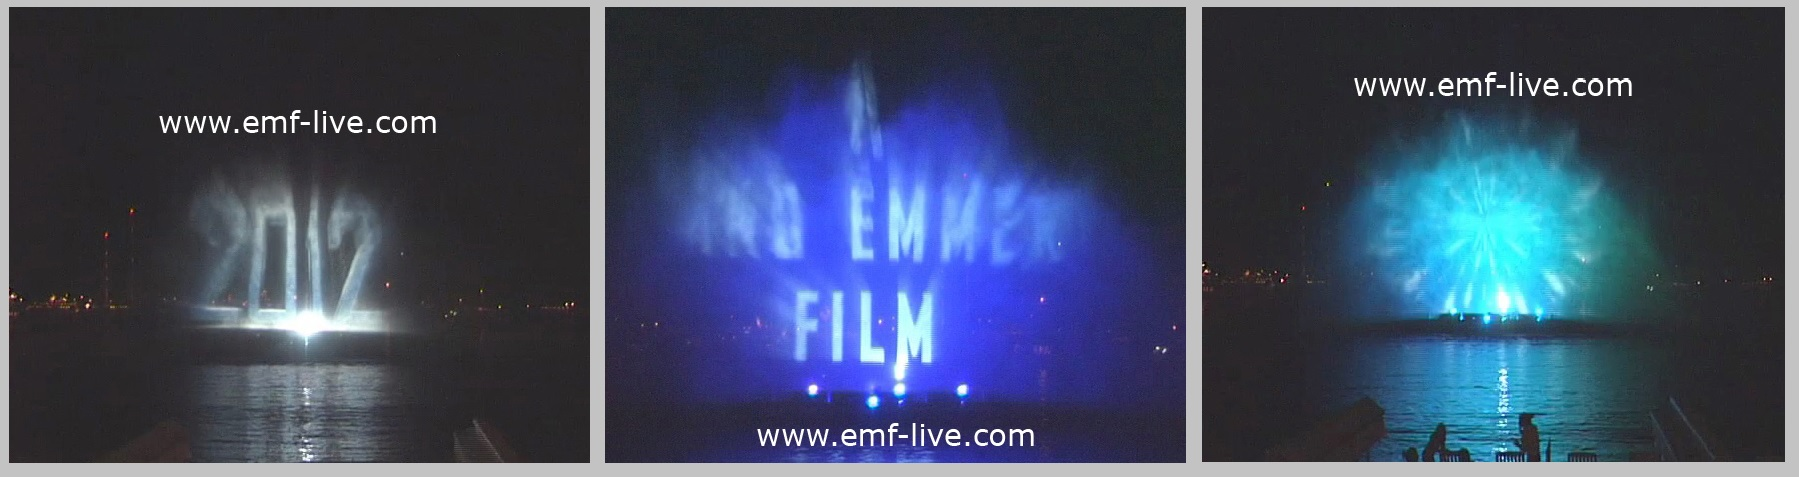 Water screen Projections for Film Premiere 2012 at Cannes Film Festival